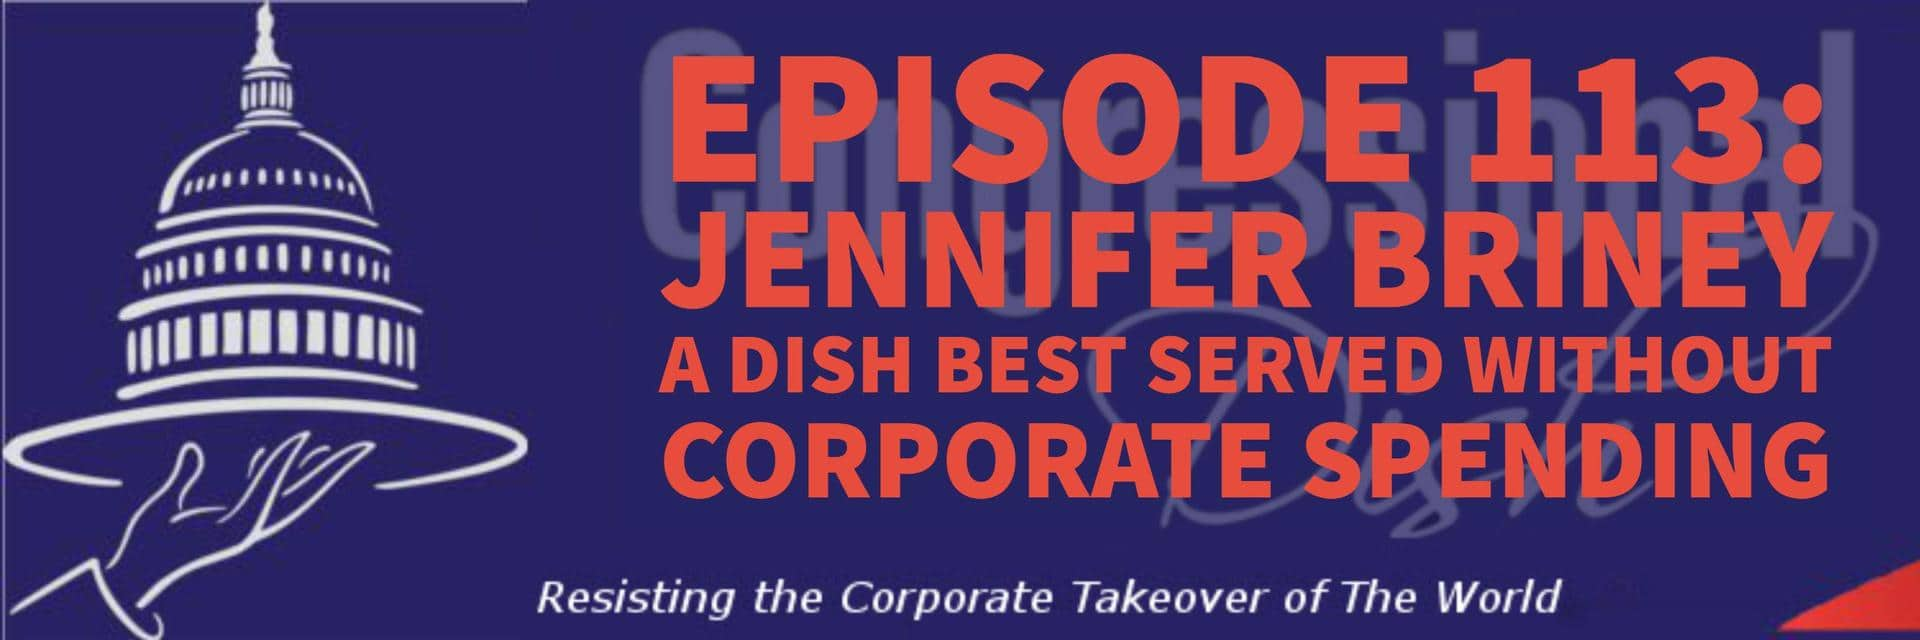 Episode 113: Jennifer Briney – A Dish Best Served without Corporate Spending